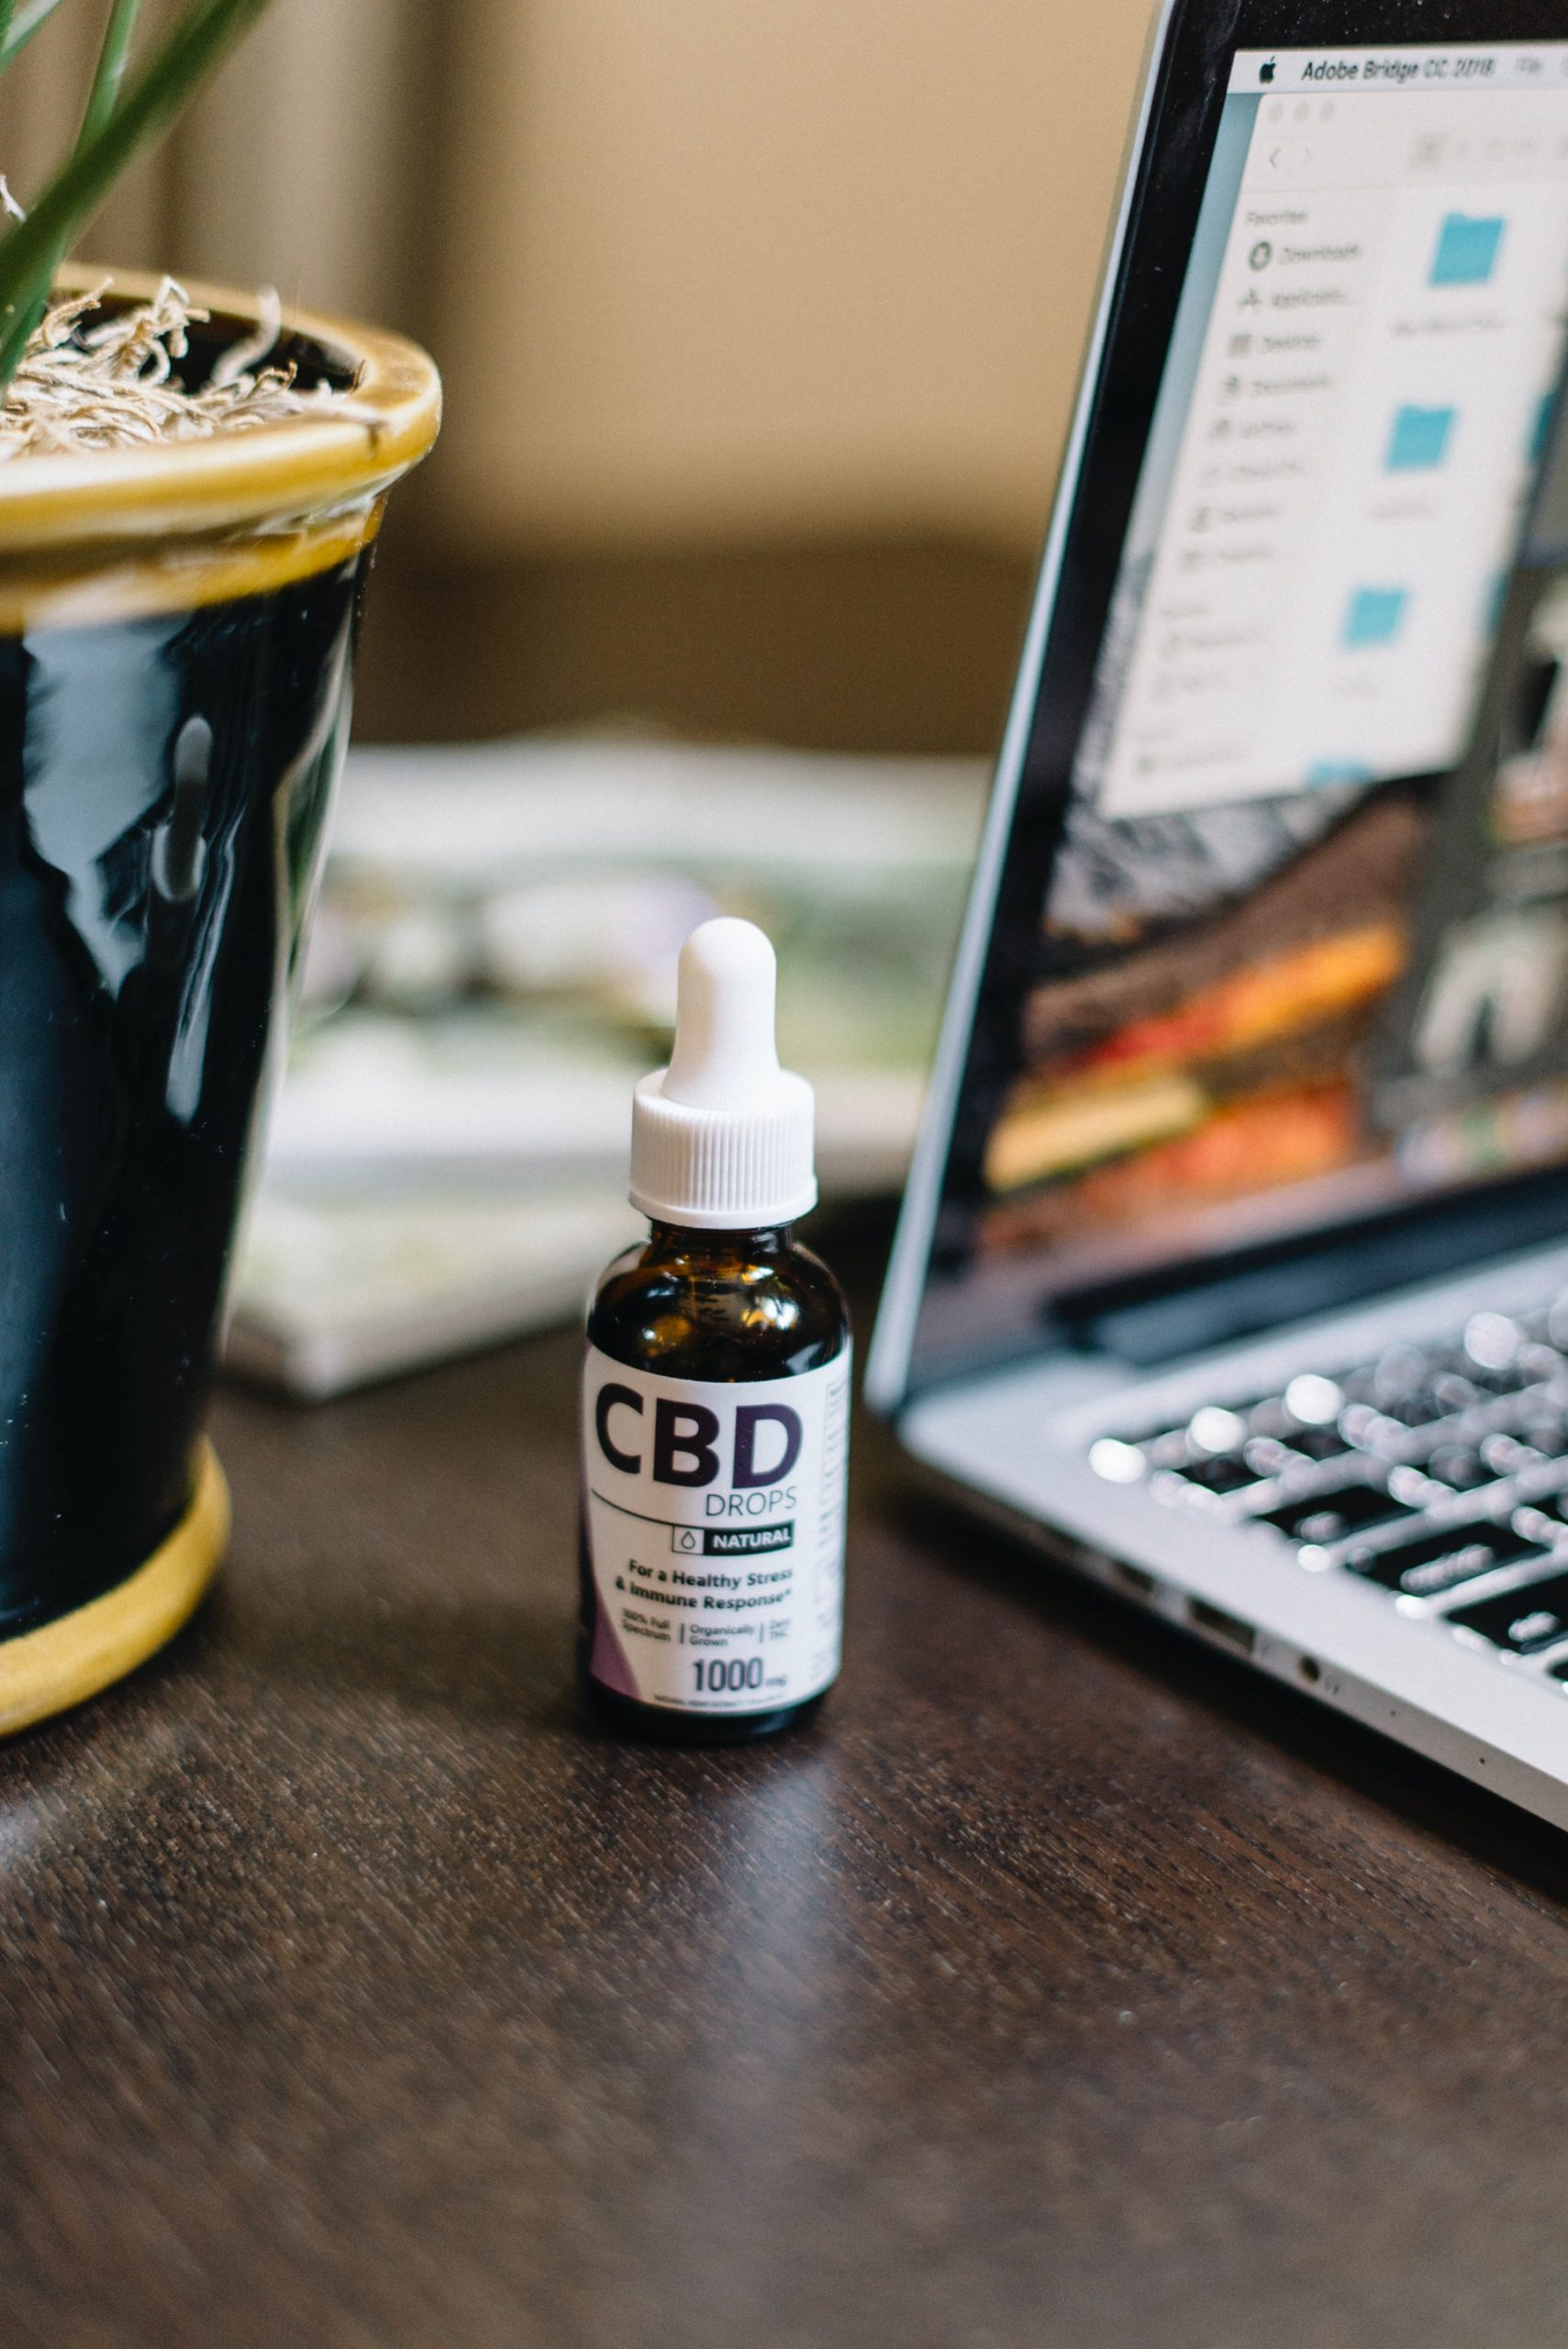 CBD Oil Uses Benefits Effects Article Image